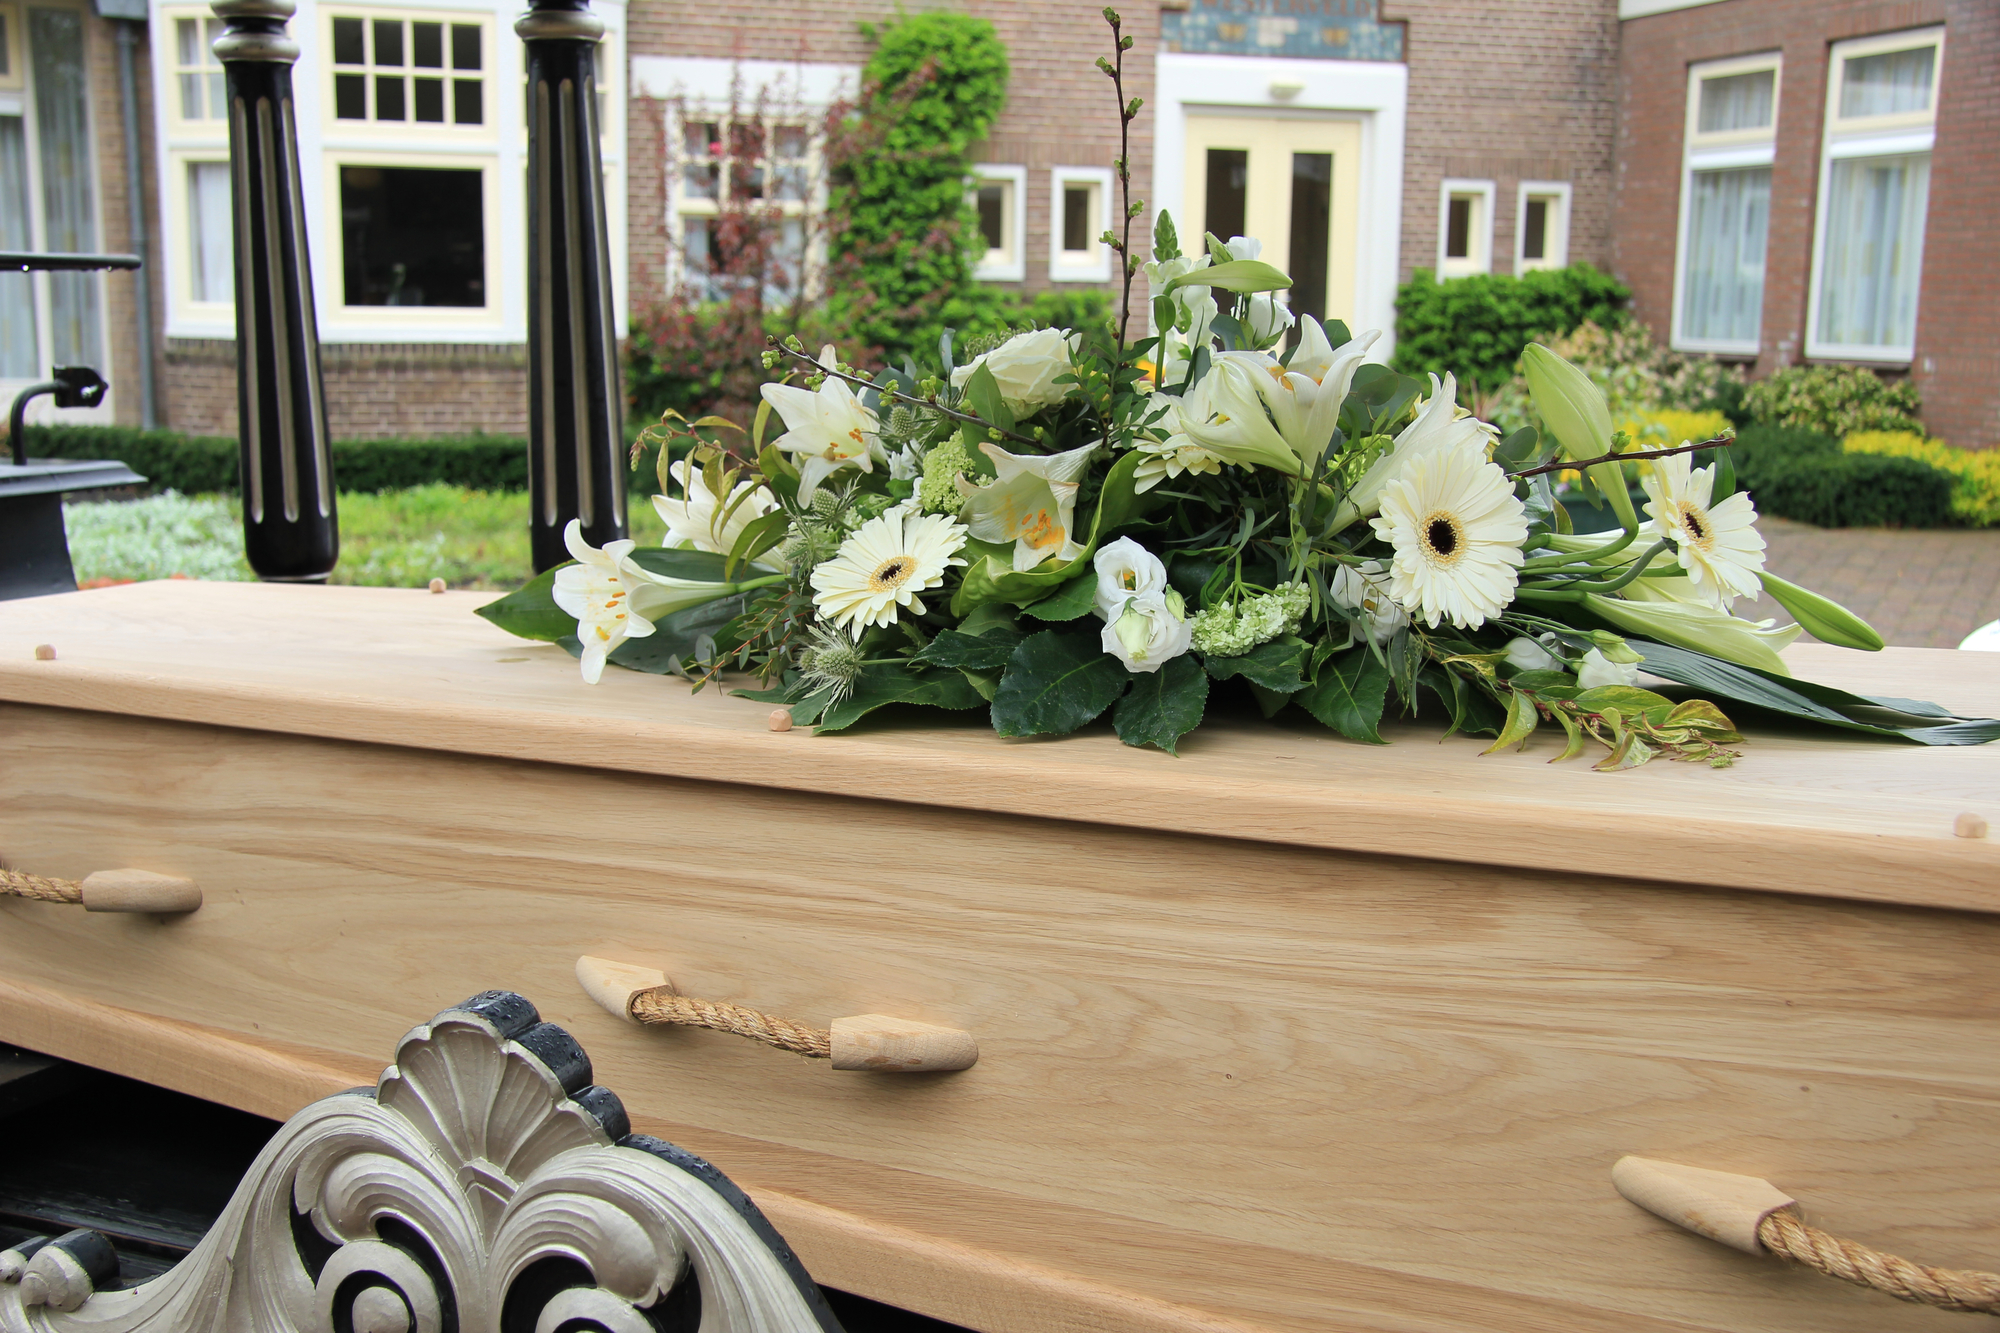 3 reasons to plan your own funeral service fossum funeral home